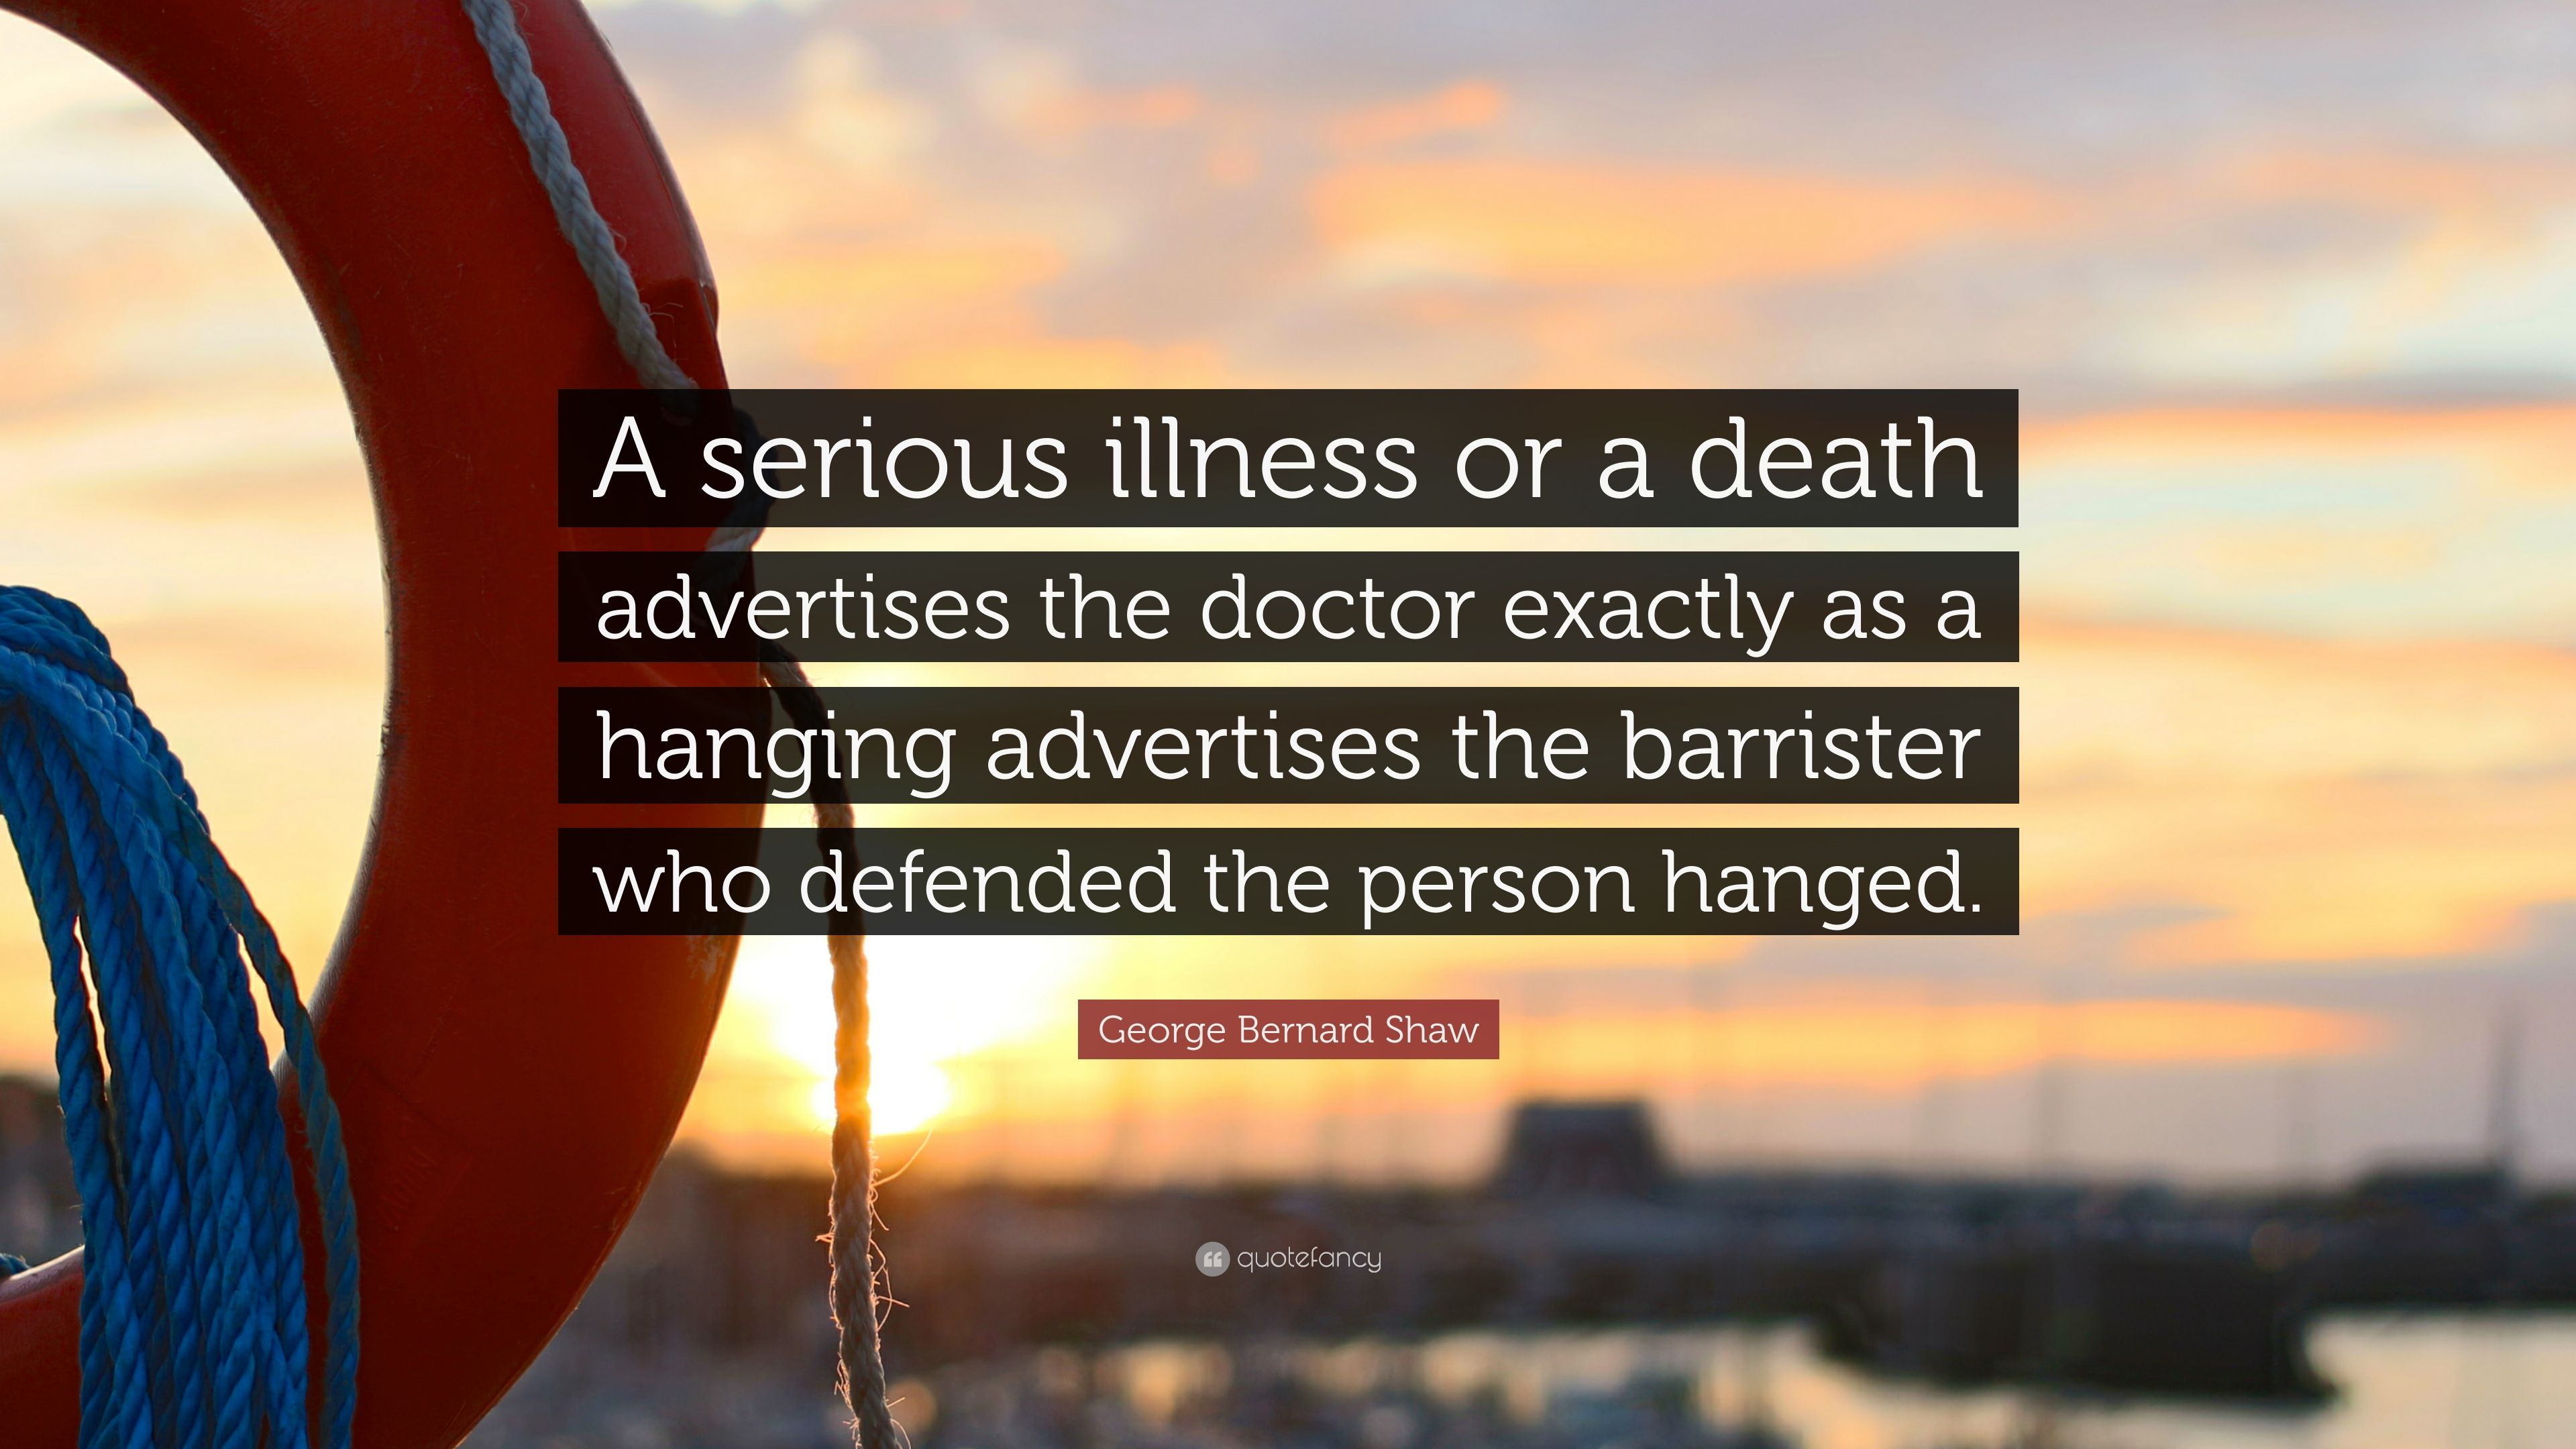 George Bernard Shaw Quote A Serious Illness Or Death Advertises The Doctor Exactly